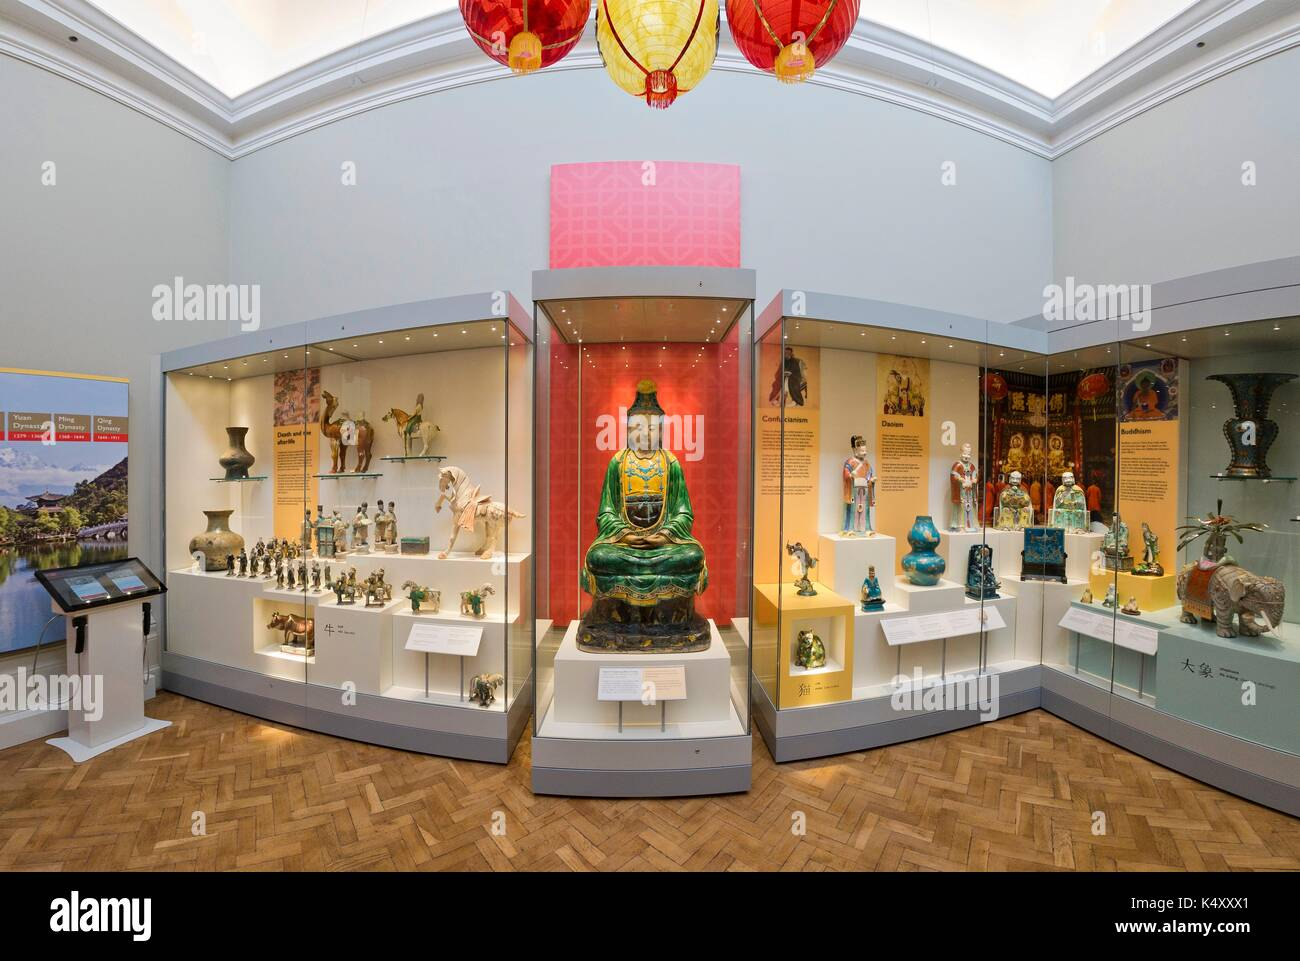 Chinese pottery and porcelain on display in the Lady Lever Art Gallery, Port Sunlight, Merseyside. - Stock Image